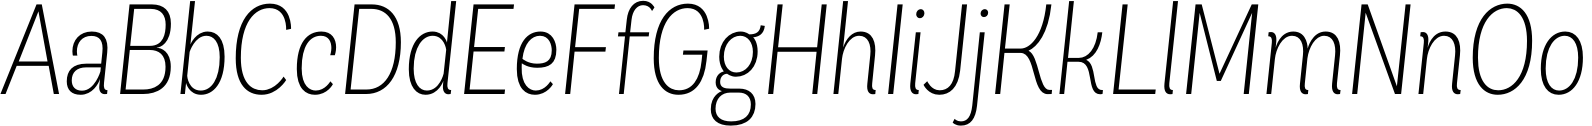 Andes Condensed ExtraLight Italic